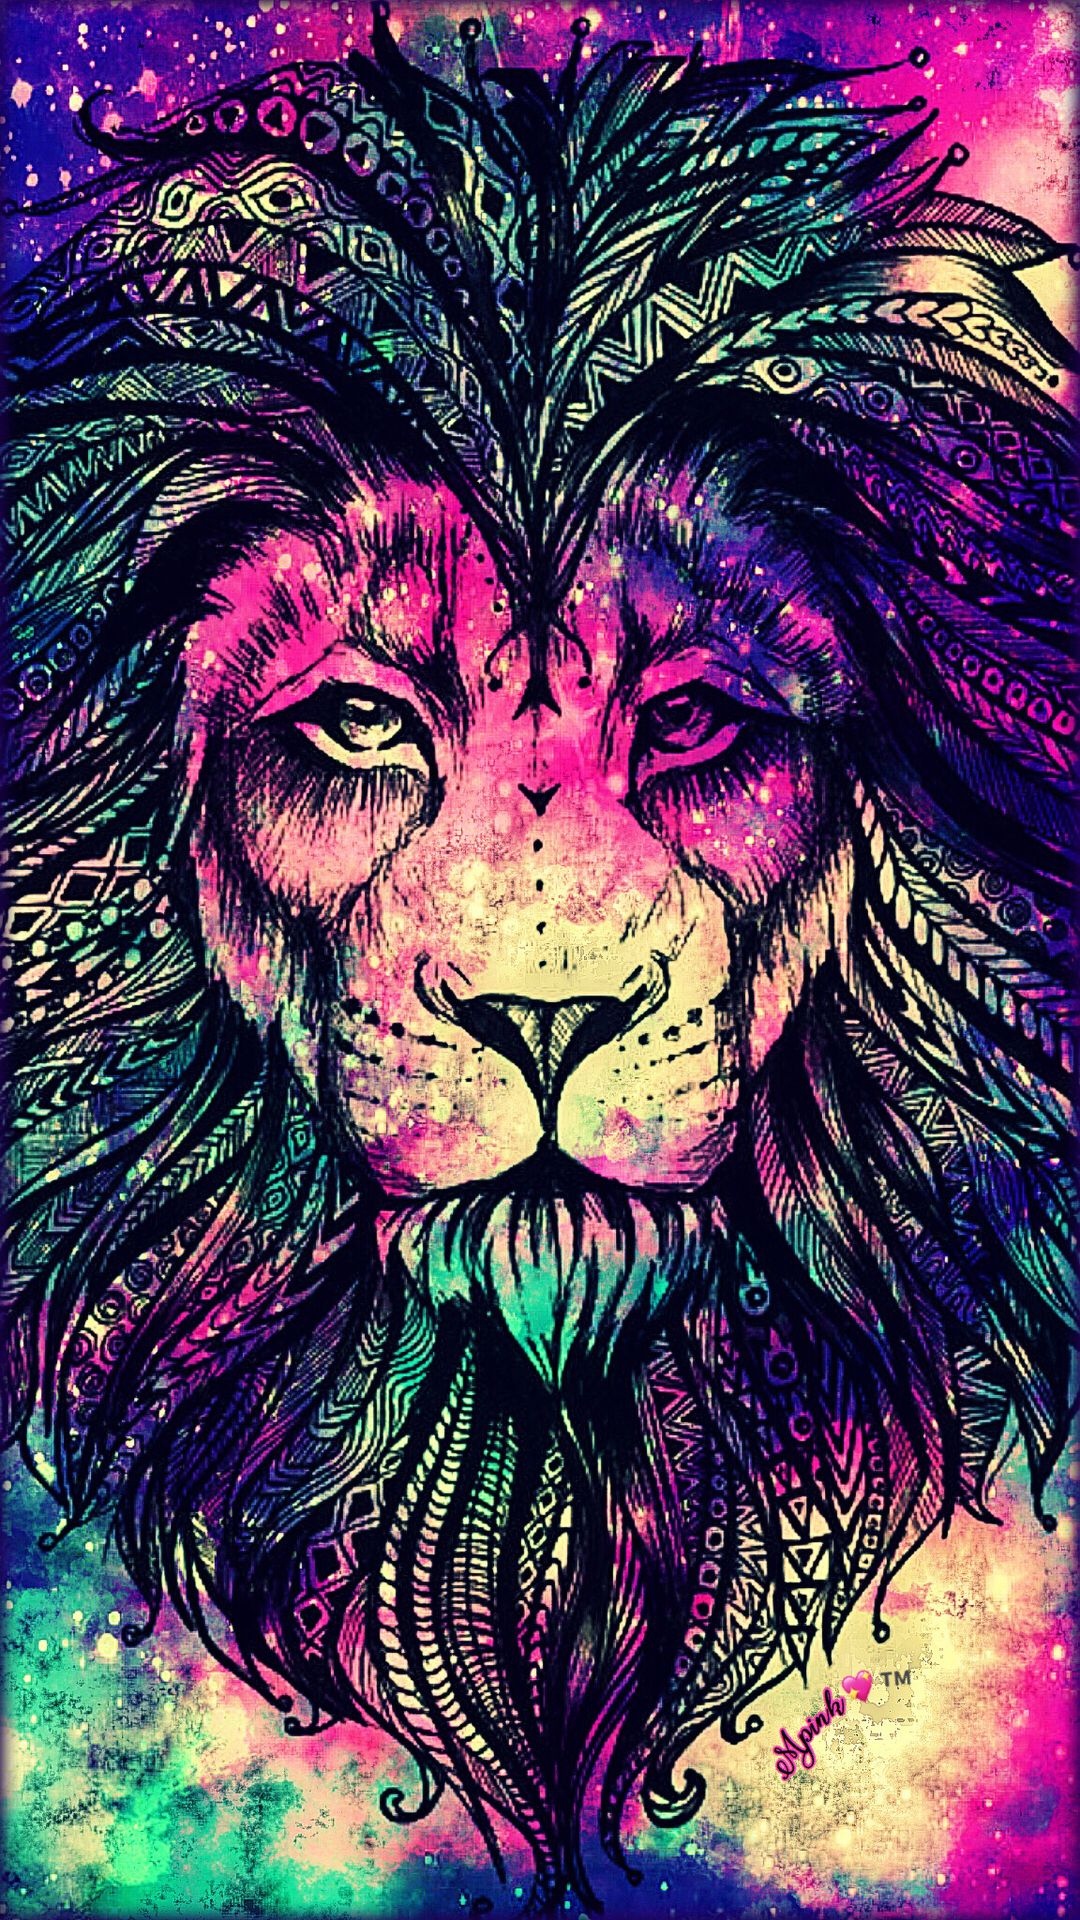 rainbow lion galaxy wallpaper #androidwallpaper #iphonewallpaper